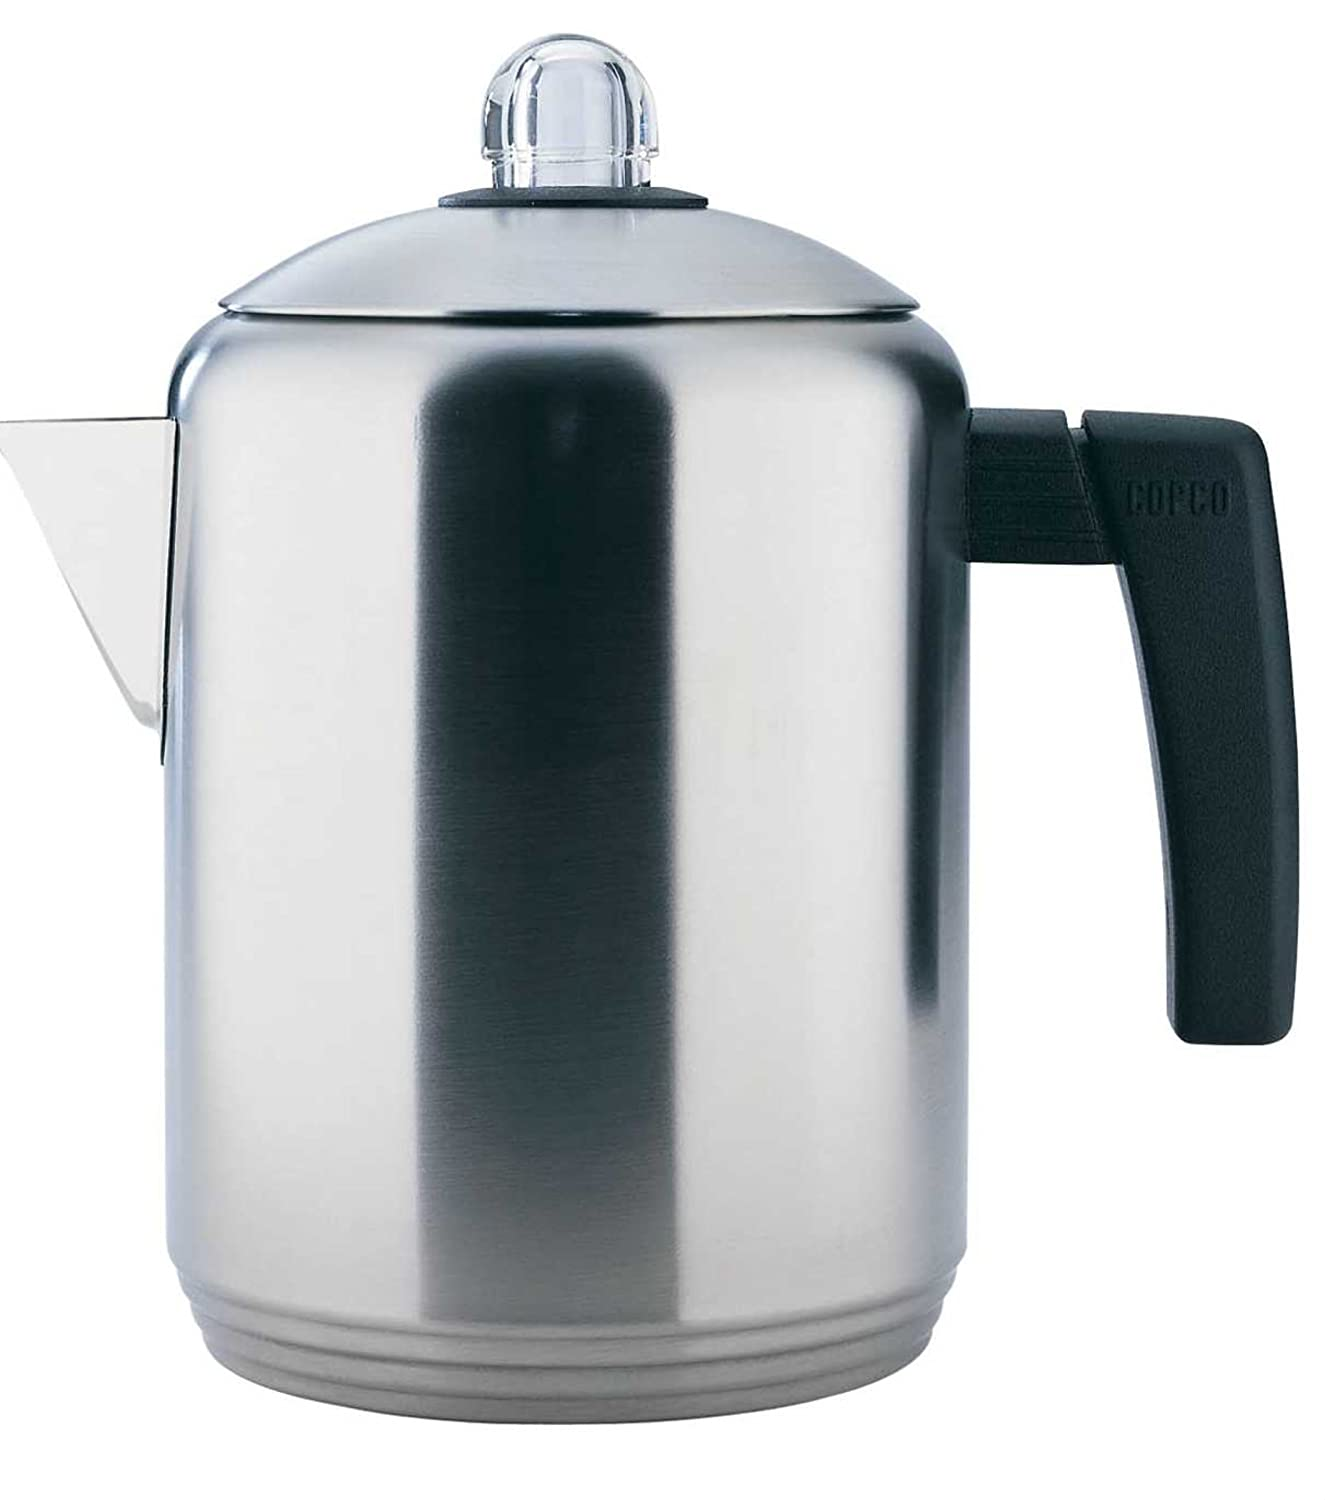 Copco 4- to 8-Cup Polished Stainless Steel Stovetop Percolator, 1.5 Quart 2501-9907